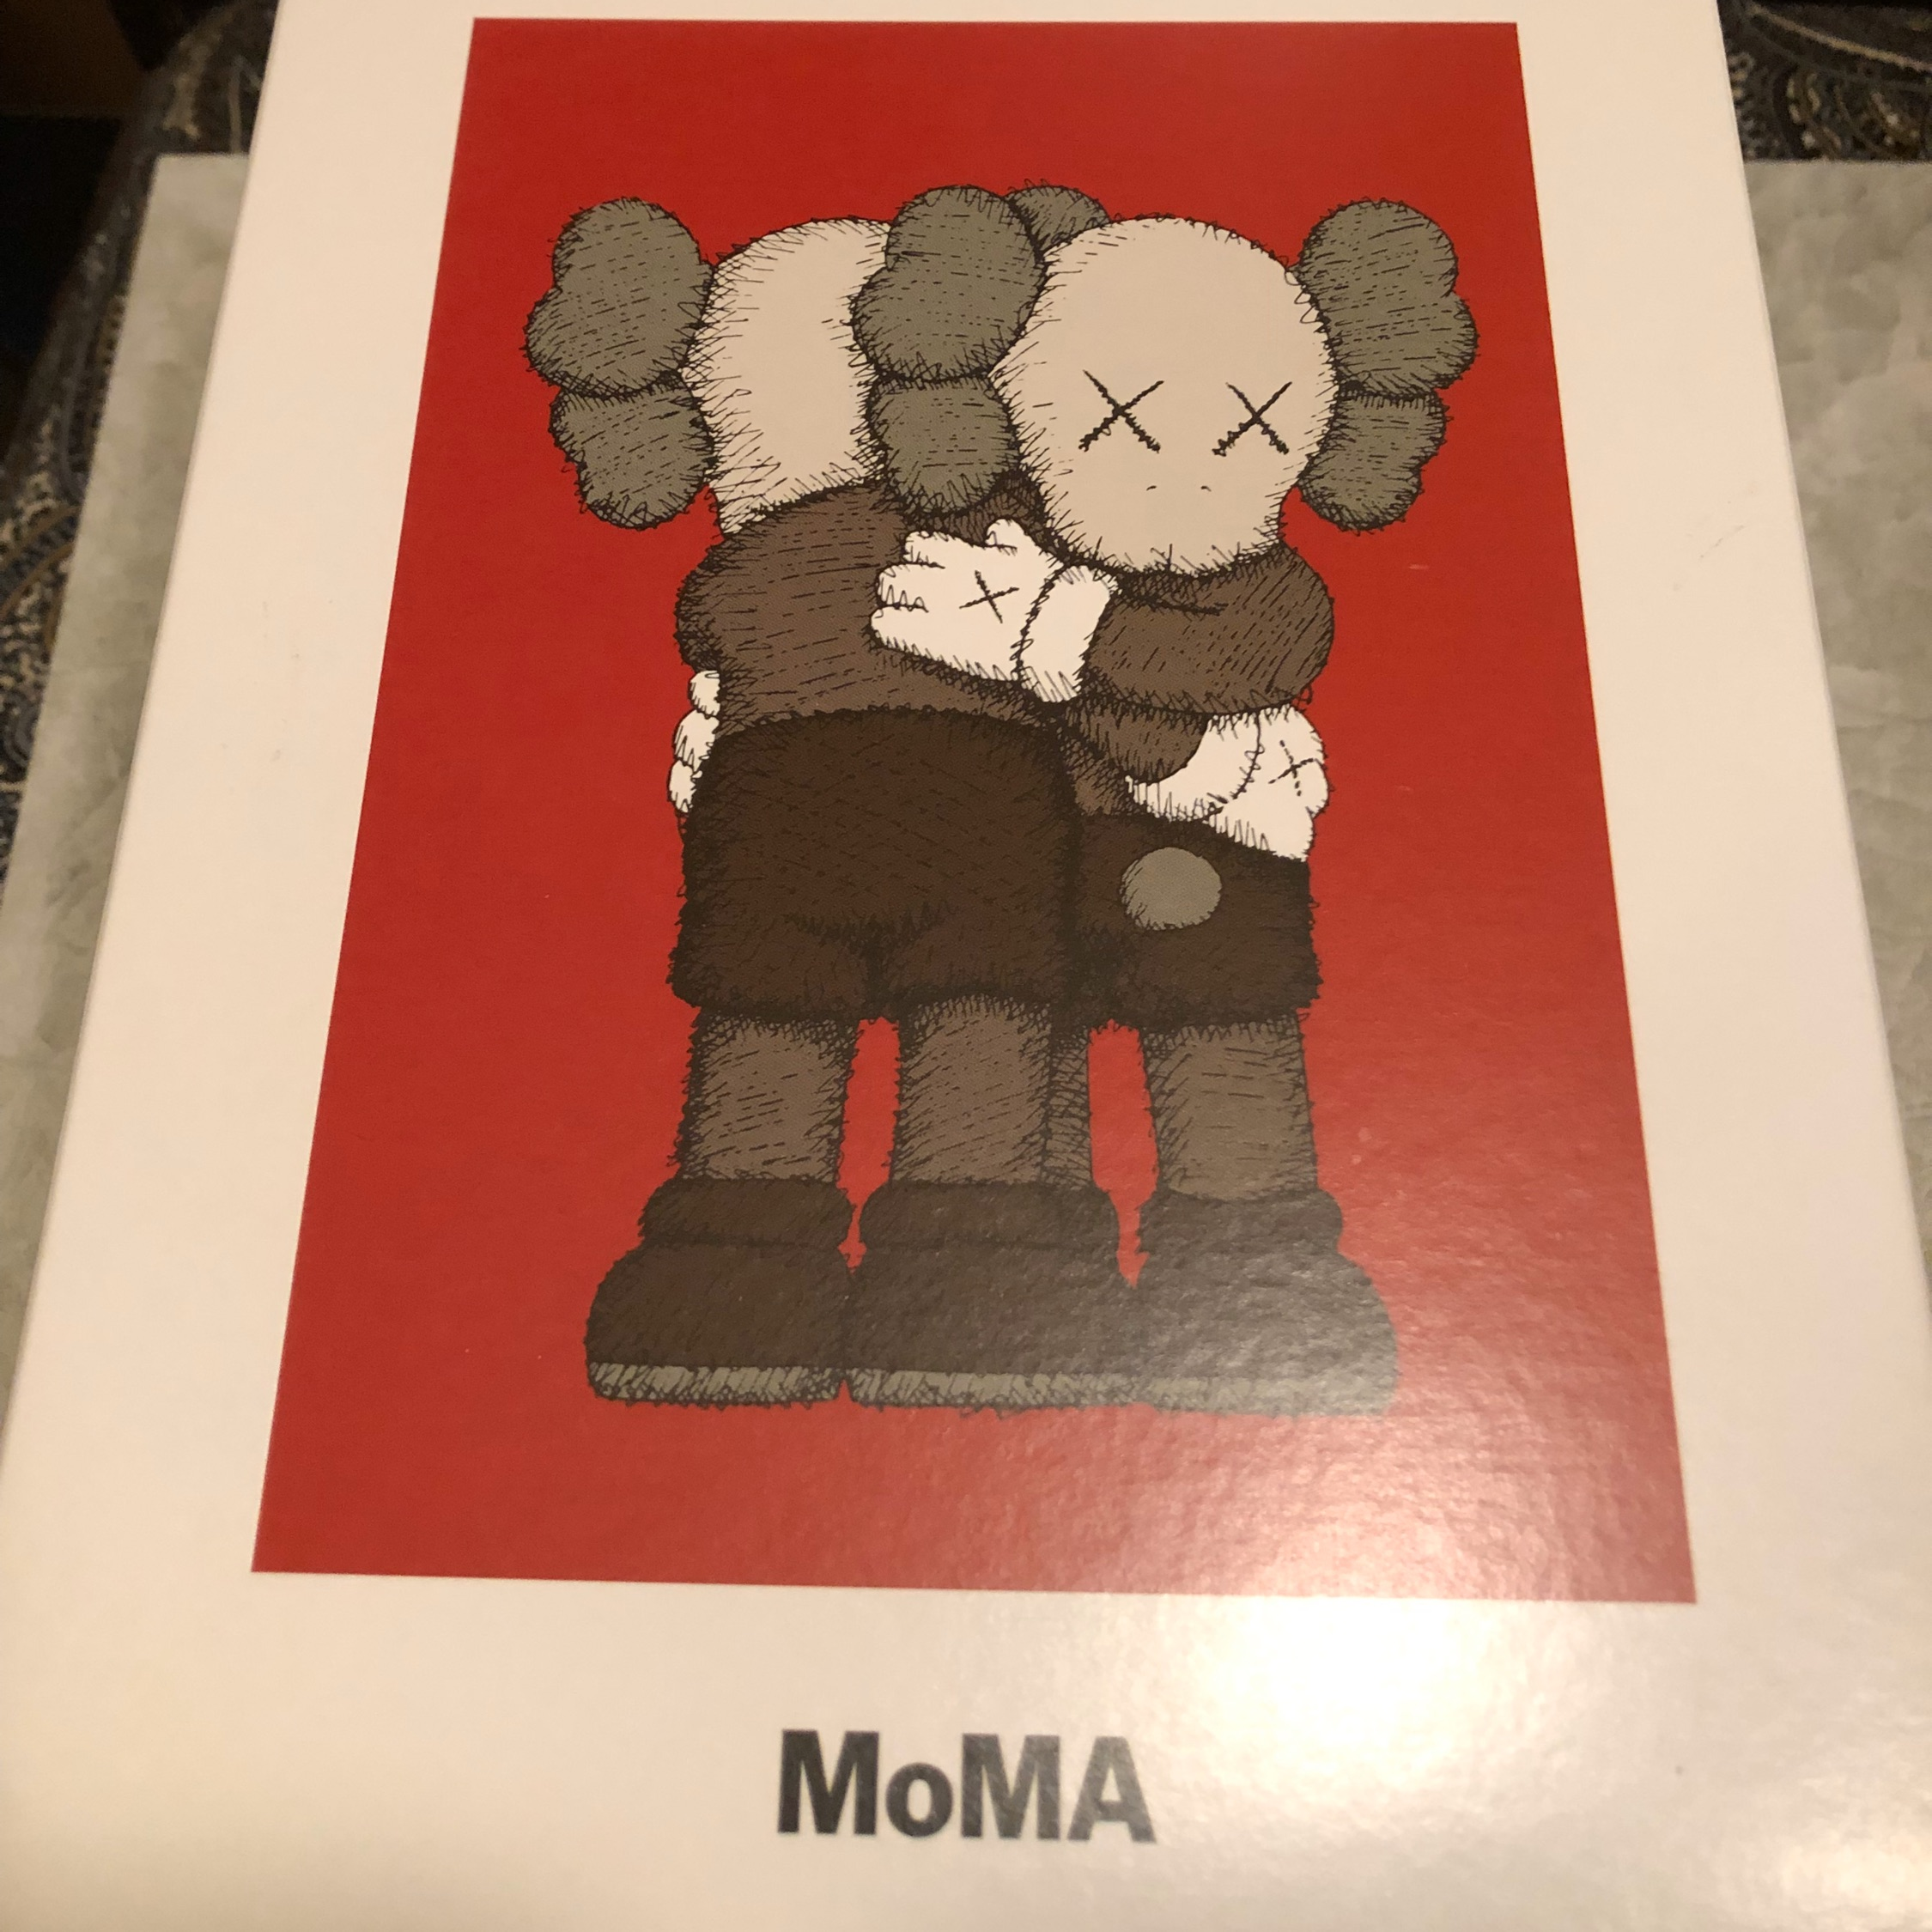 Moma Design Store X Kaws Holiday Cards One Box Set